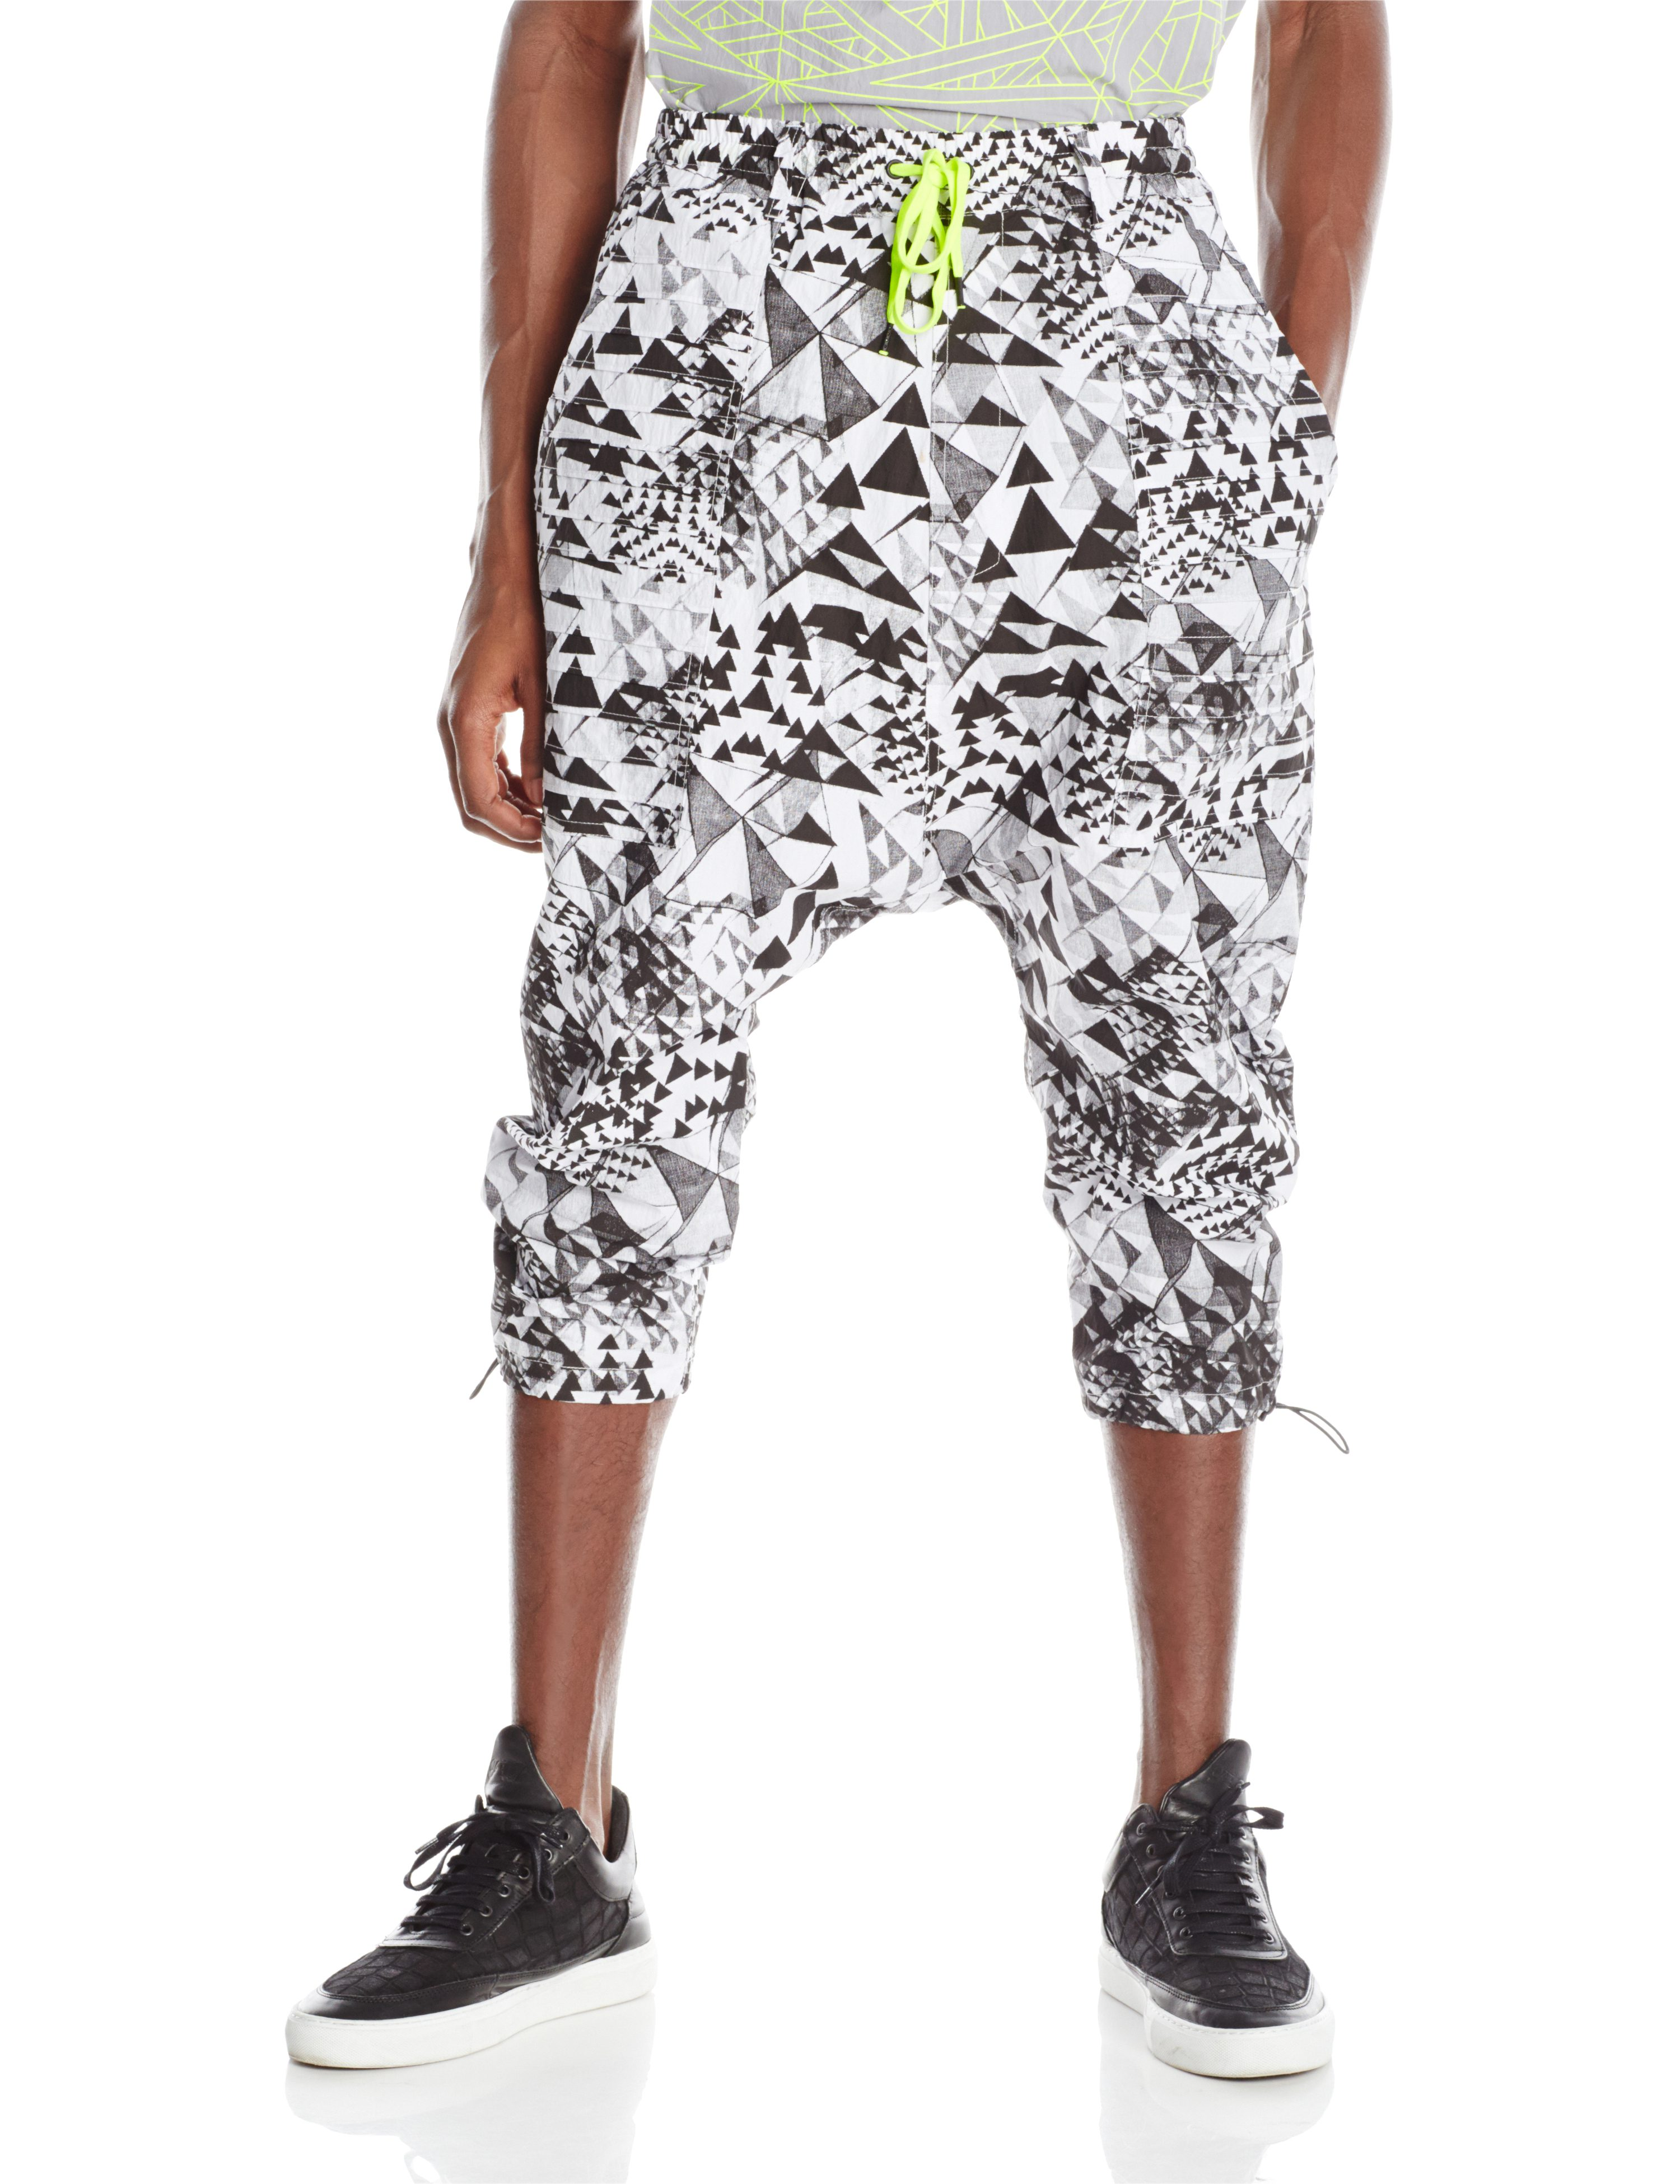 FRONT-DROP PANT 2.0 WHITE BLACK PRINT.0590